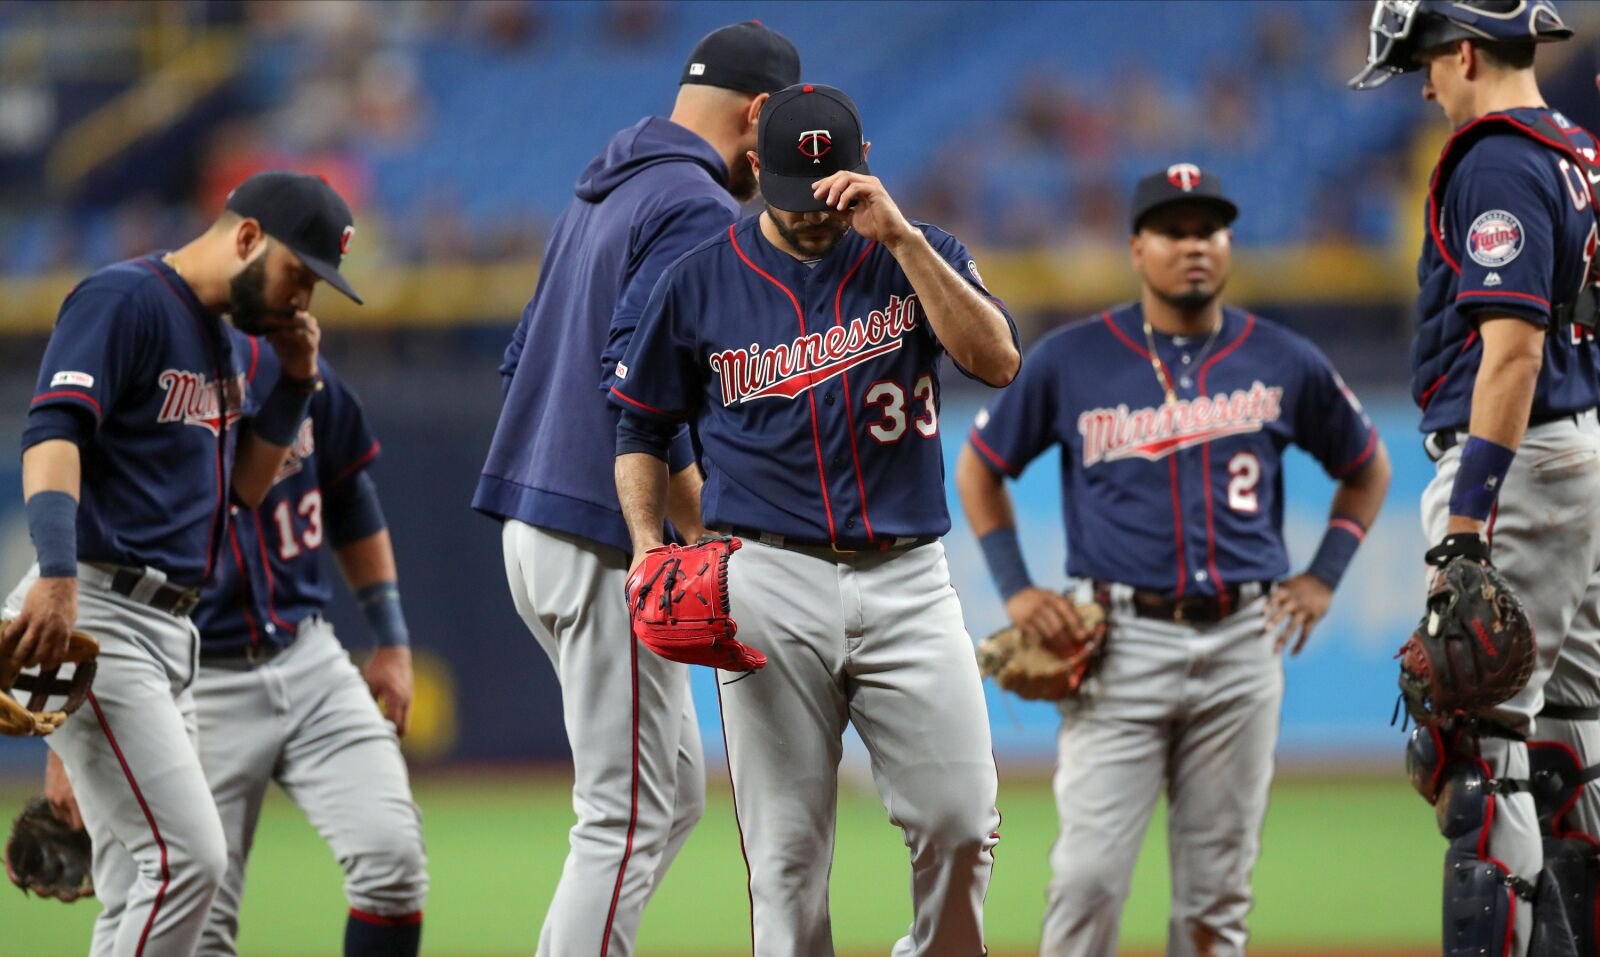 Minnesota Twins post game: Pitching not quite playoff material